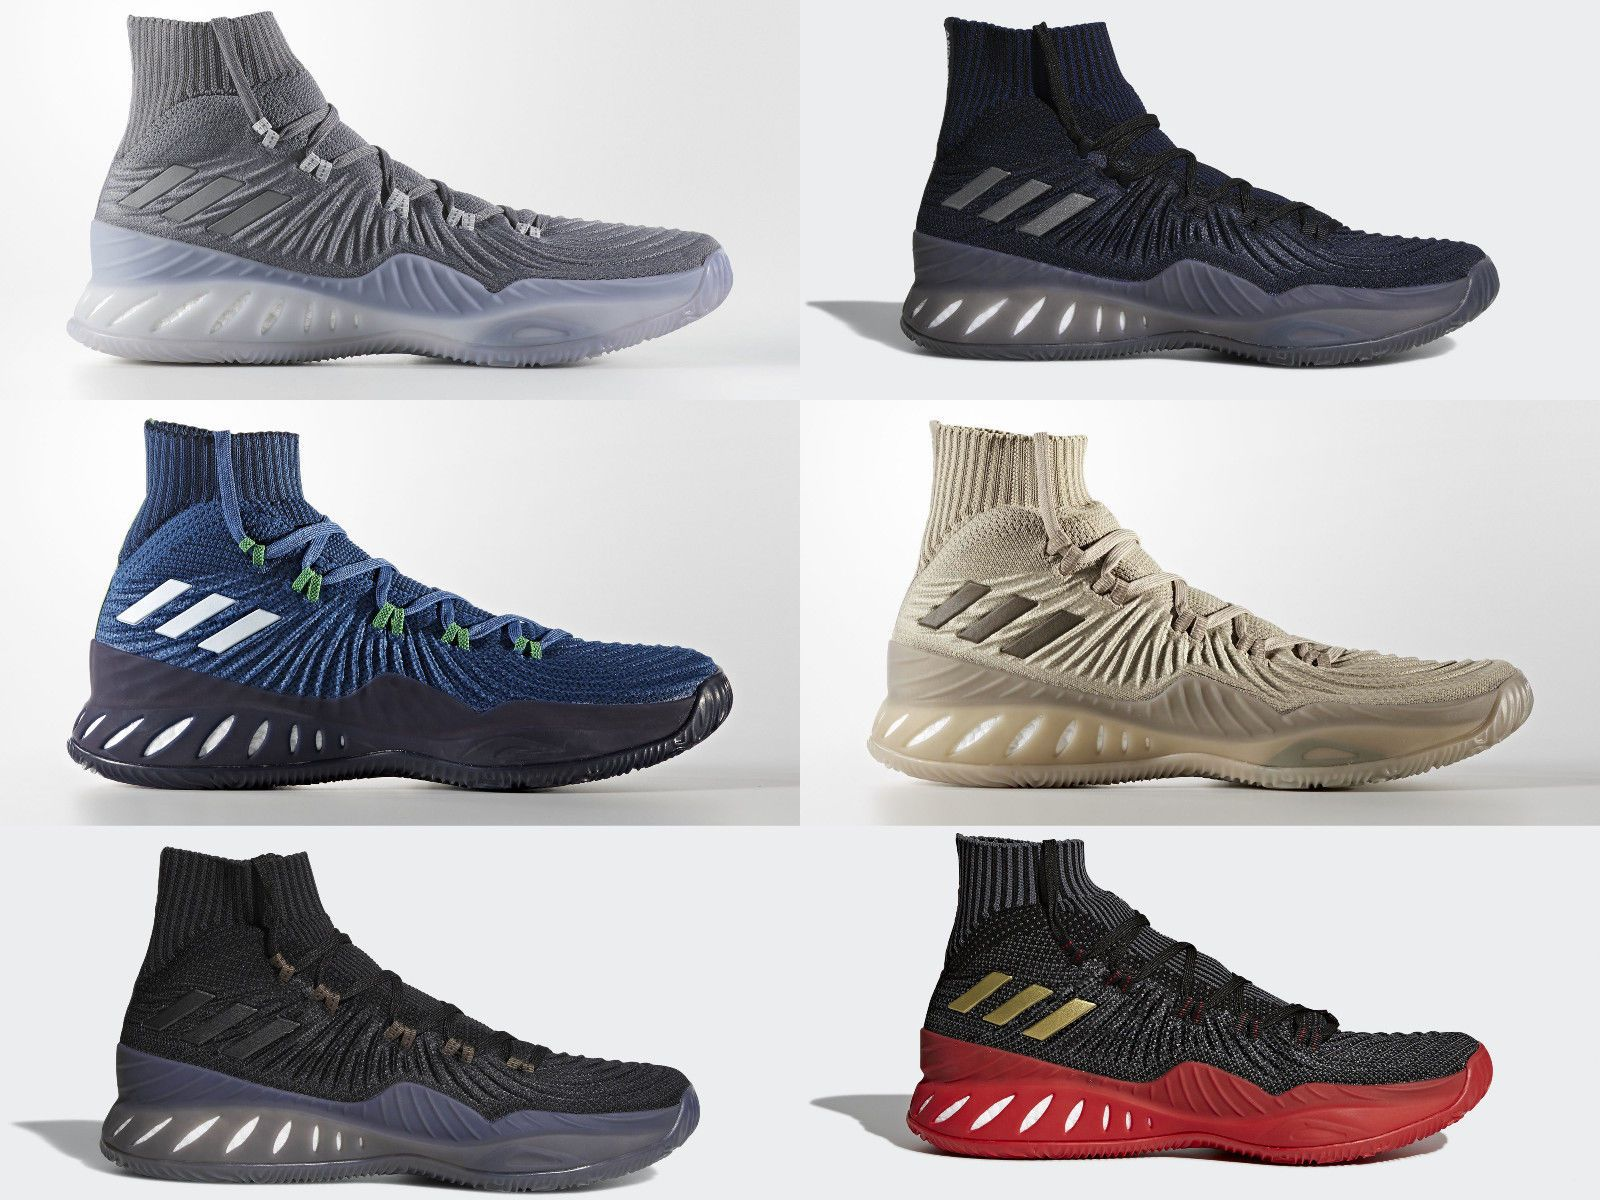 hot sale online 1e692 dc6a2 Clothing Shoes and Accessories 158963 New Adidas Crazy Explosive Primeknit Basketball  Boost Shoes New - BUY IT NOW ONLY 112.46 on eBay!